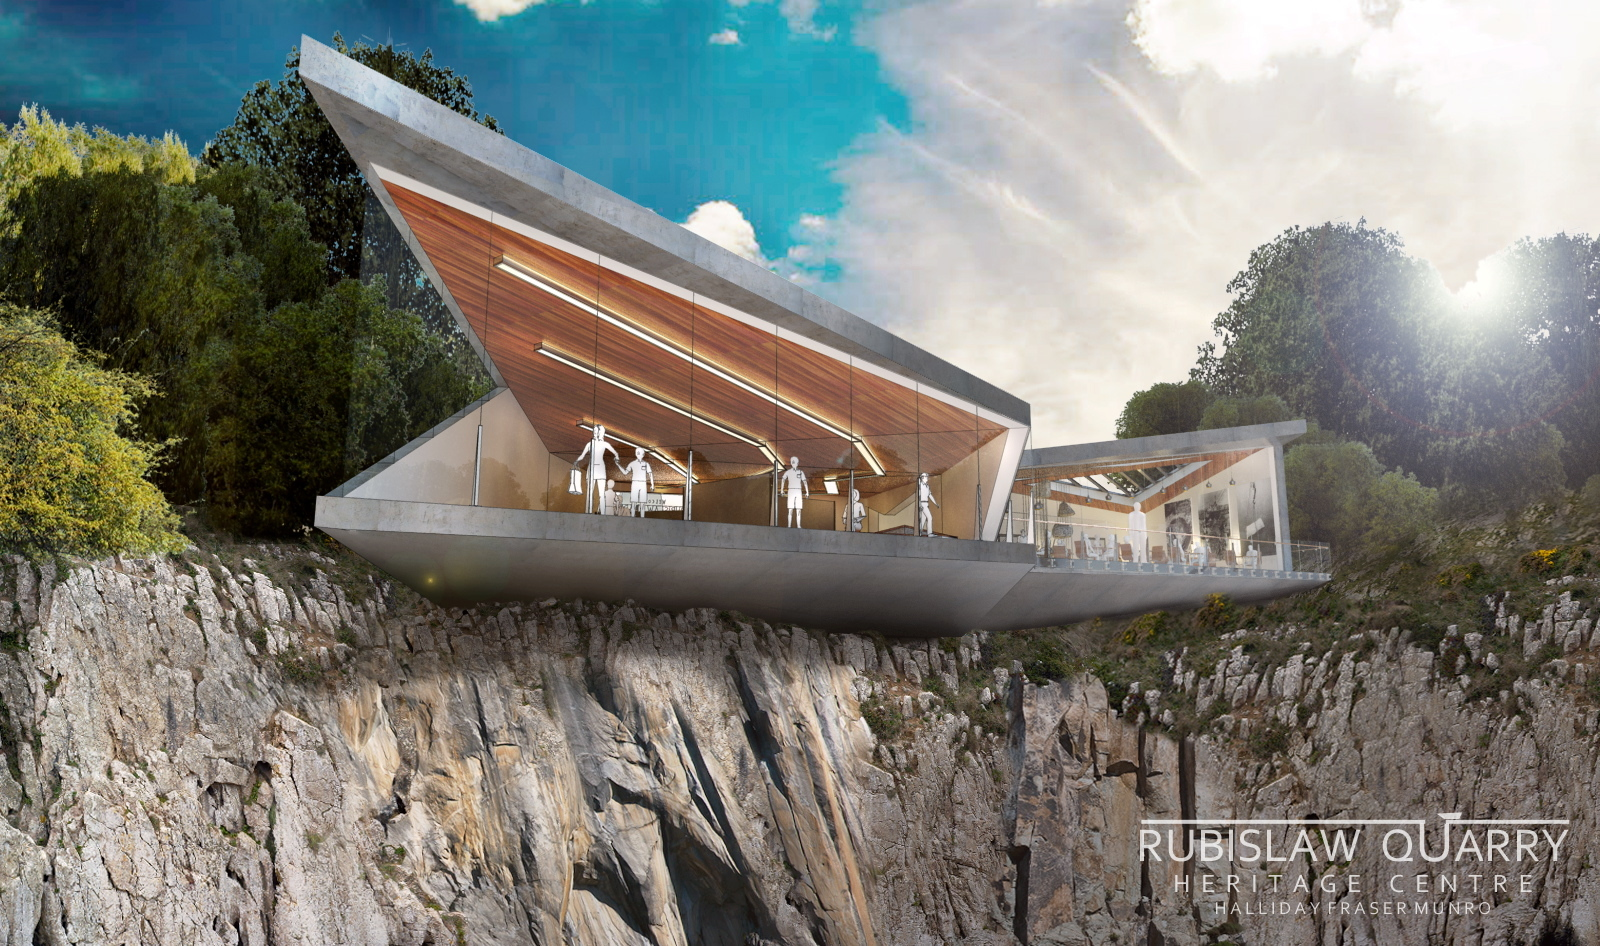 project:  An artist's  impression of  Rubislaw Quarry Heritage Centre.